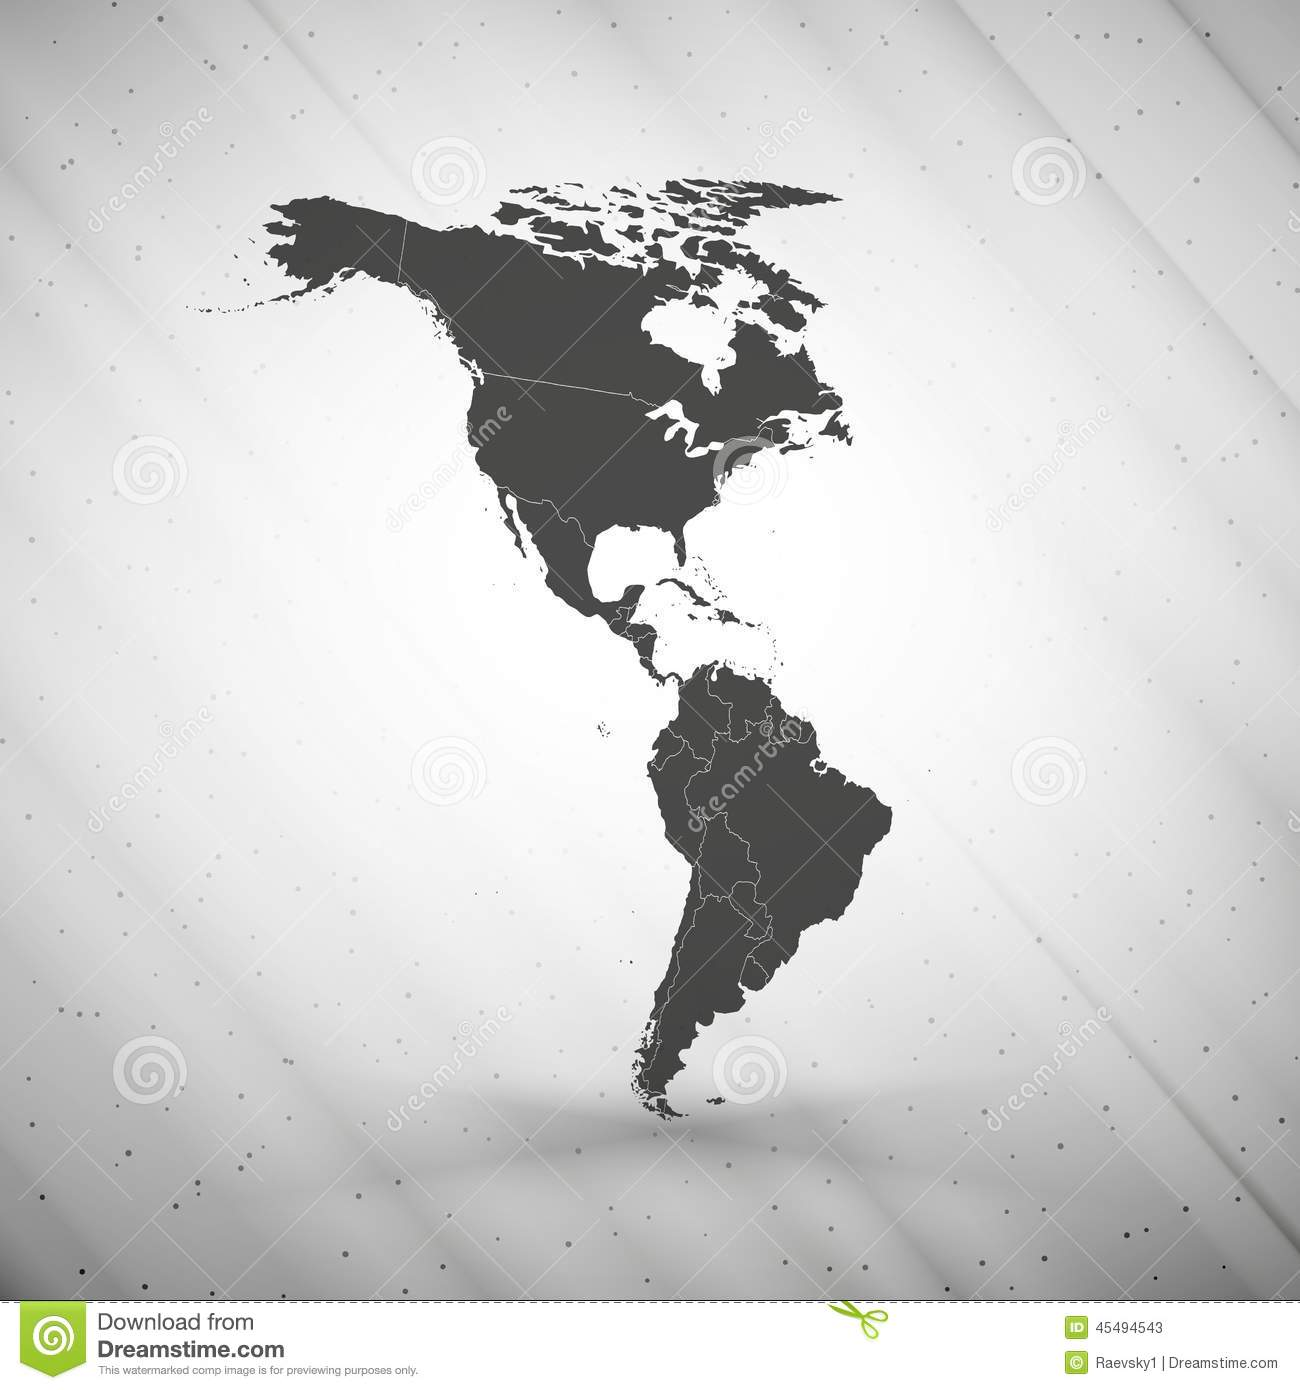 North And South America Map On Gray Background, Stock Vector ... on gray map of italy, gray map of scotland, gray map of poland, gray map of iran, gray map of france, gray map of cuba, gray map of brazil, gray map of korea, gray map of india, gray map of mexico, gray map of america, gray map of georgia, gray map of germany, gray map of asia,